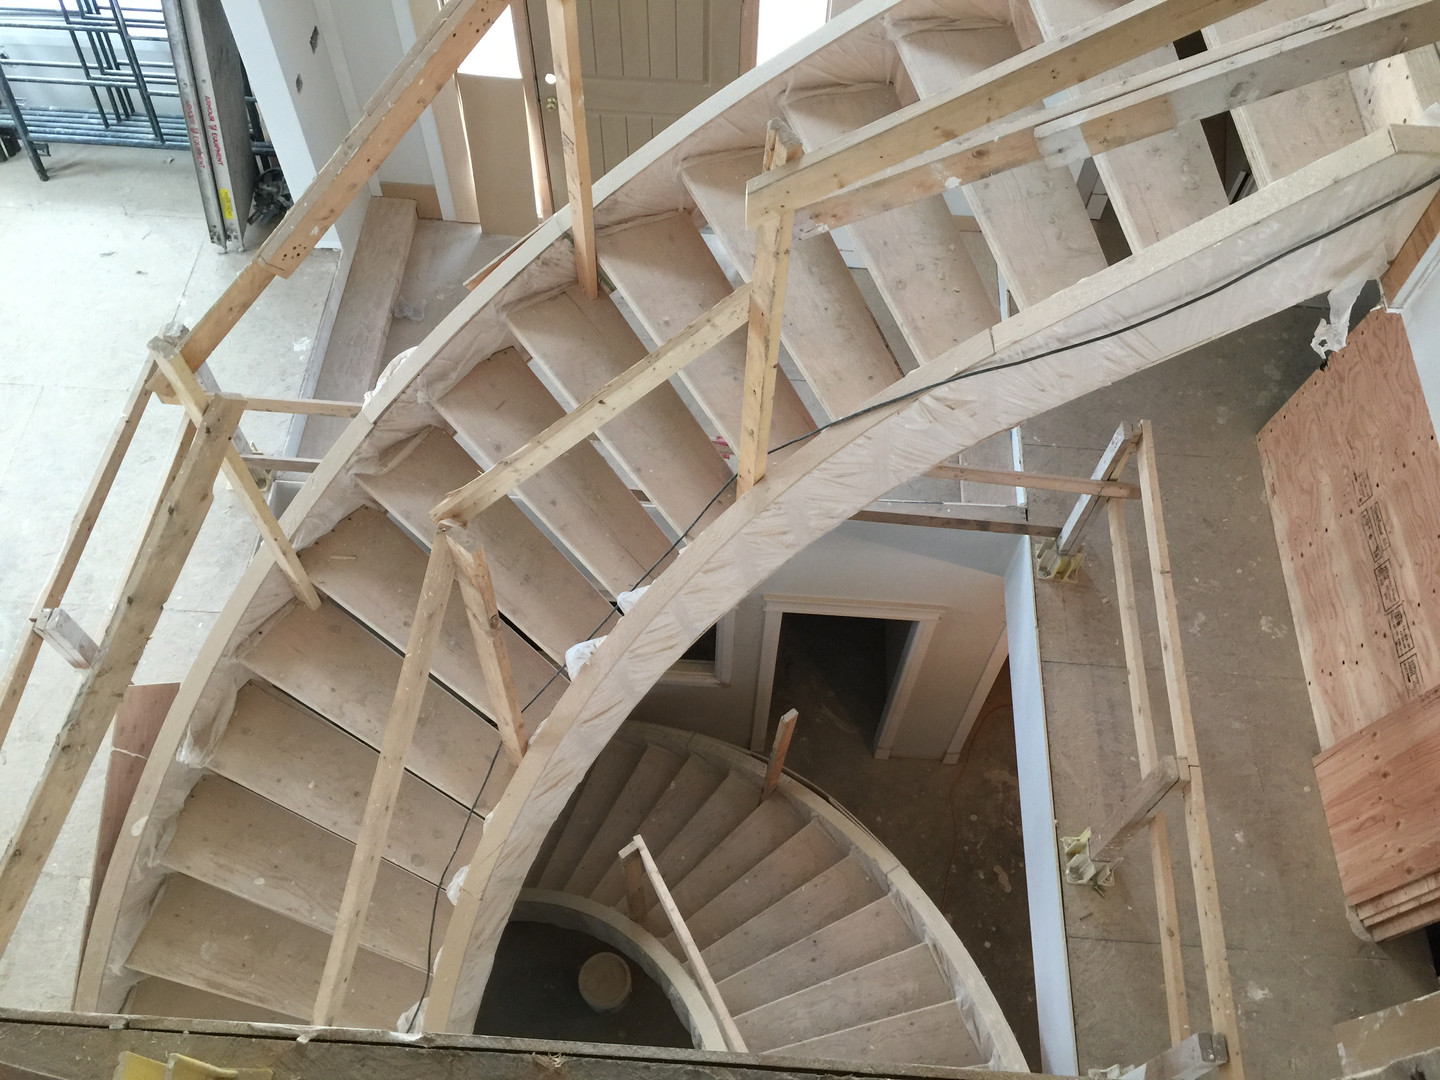 Curved stairs under construction